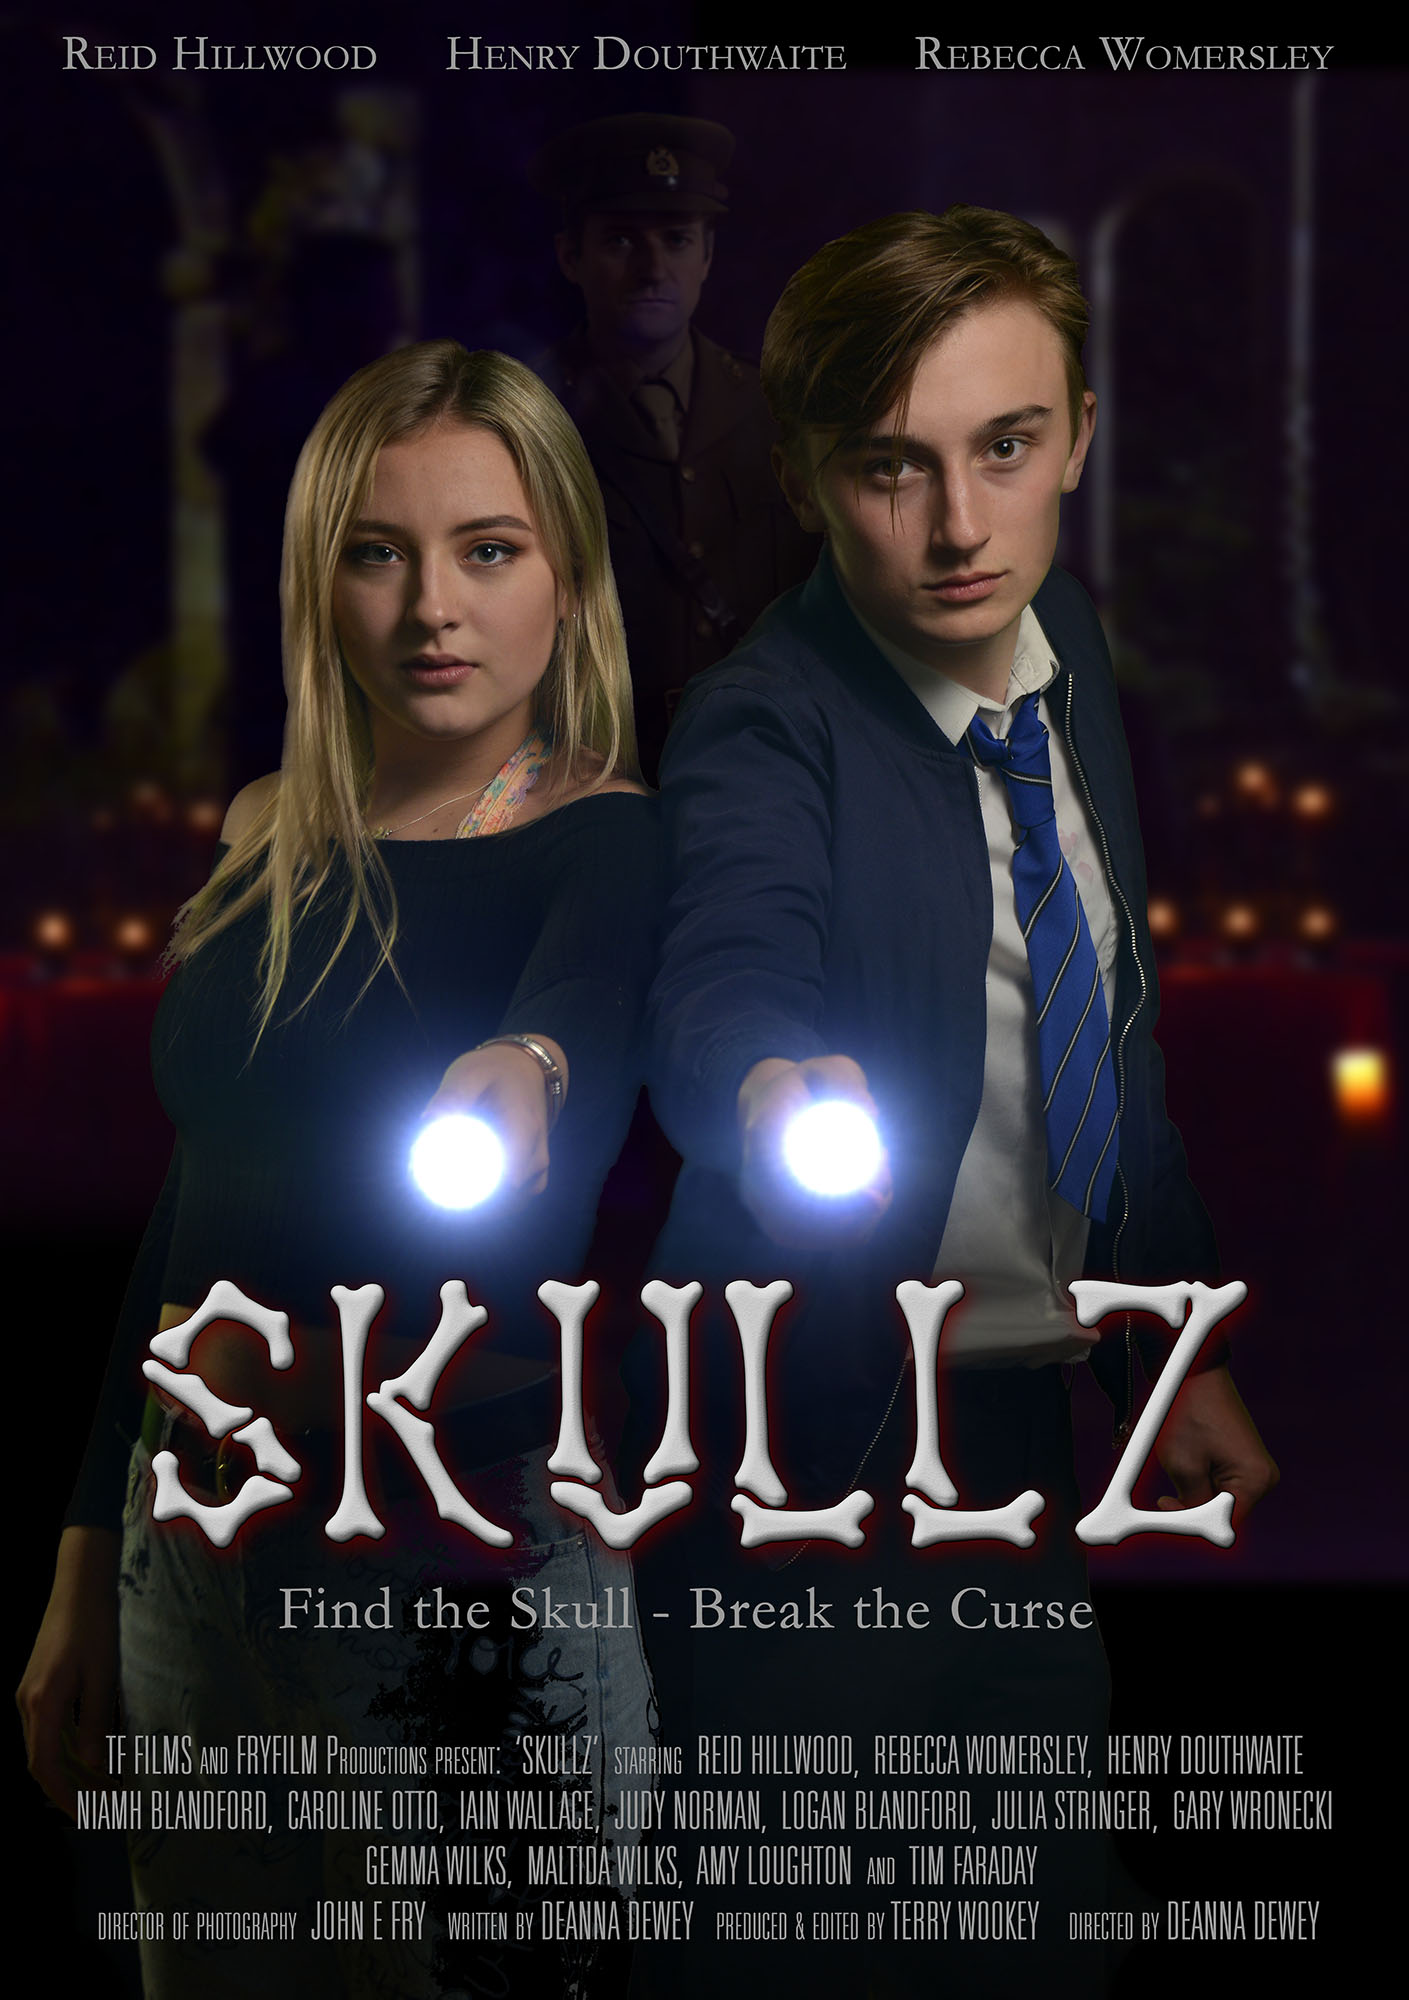 Skullz indie film poster UK